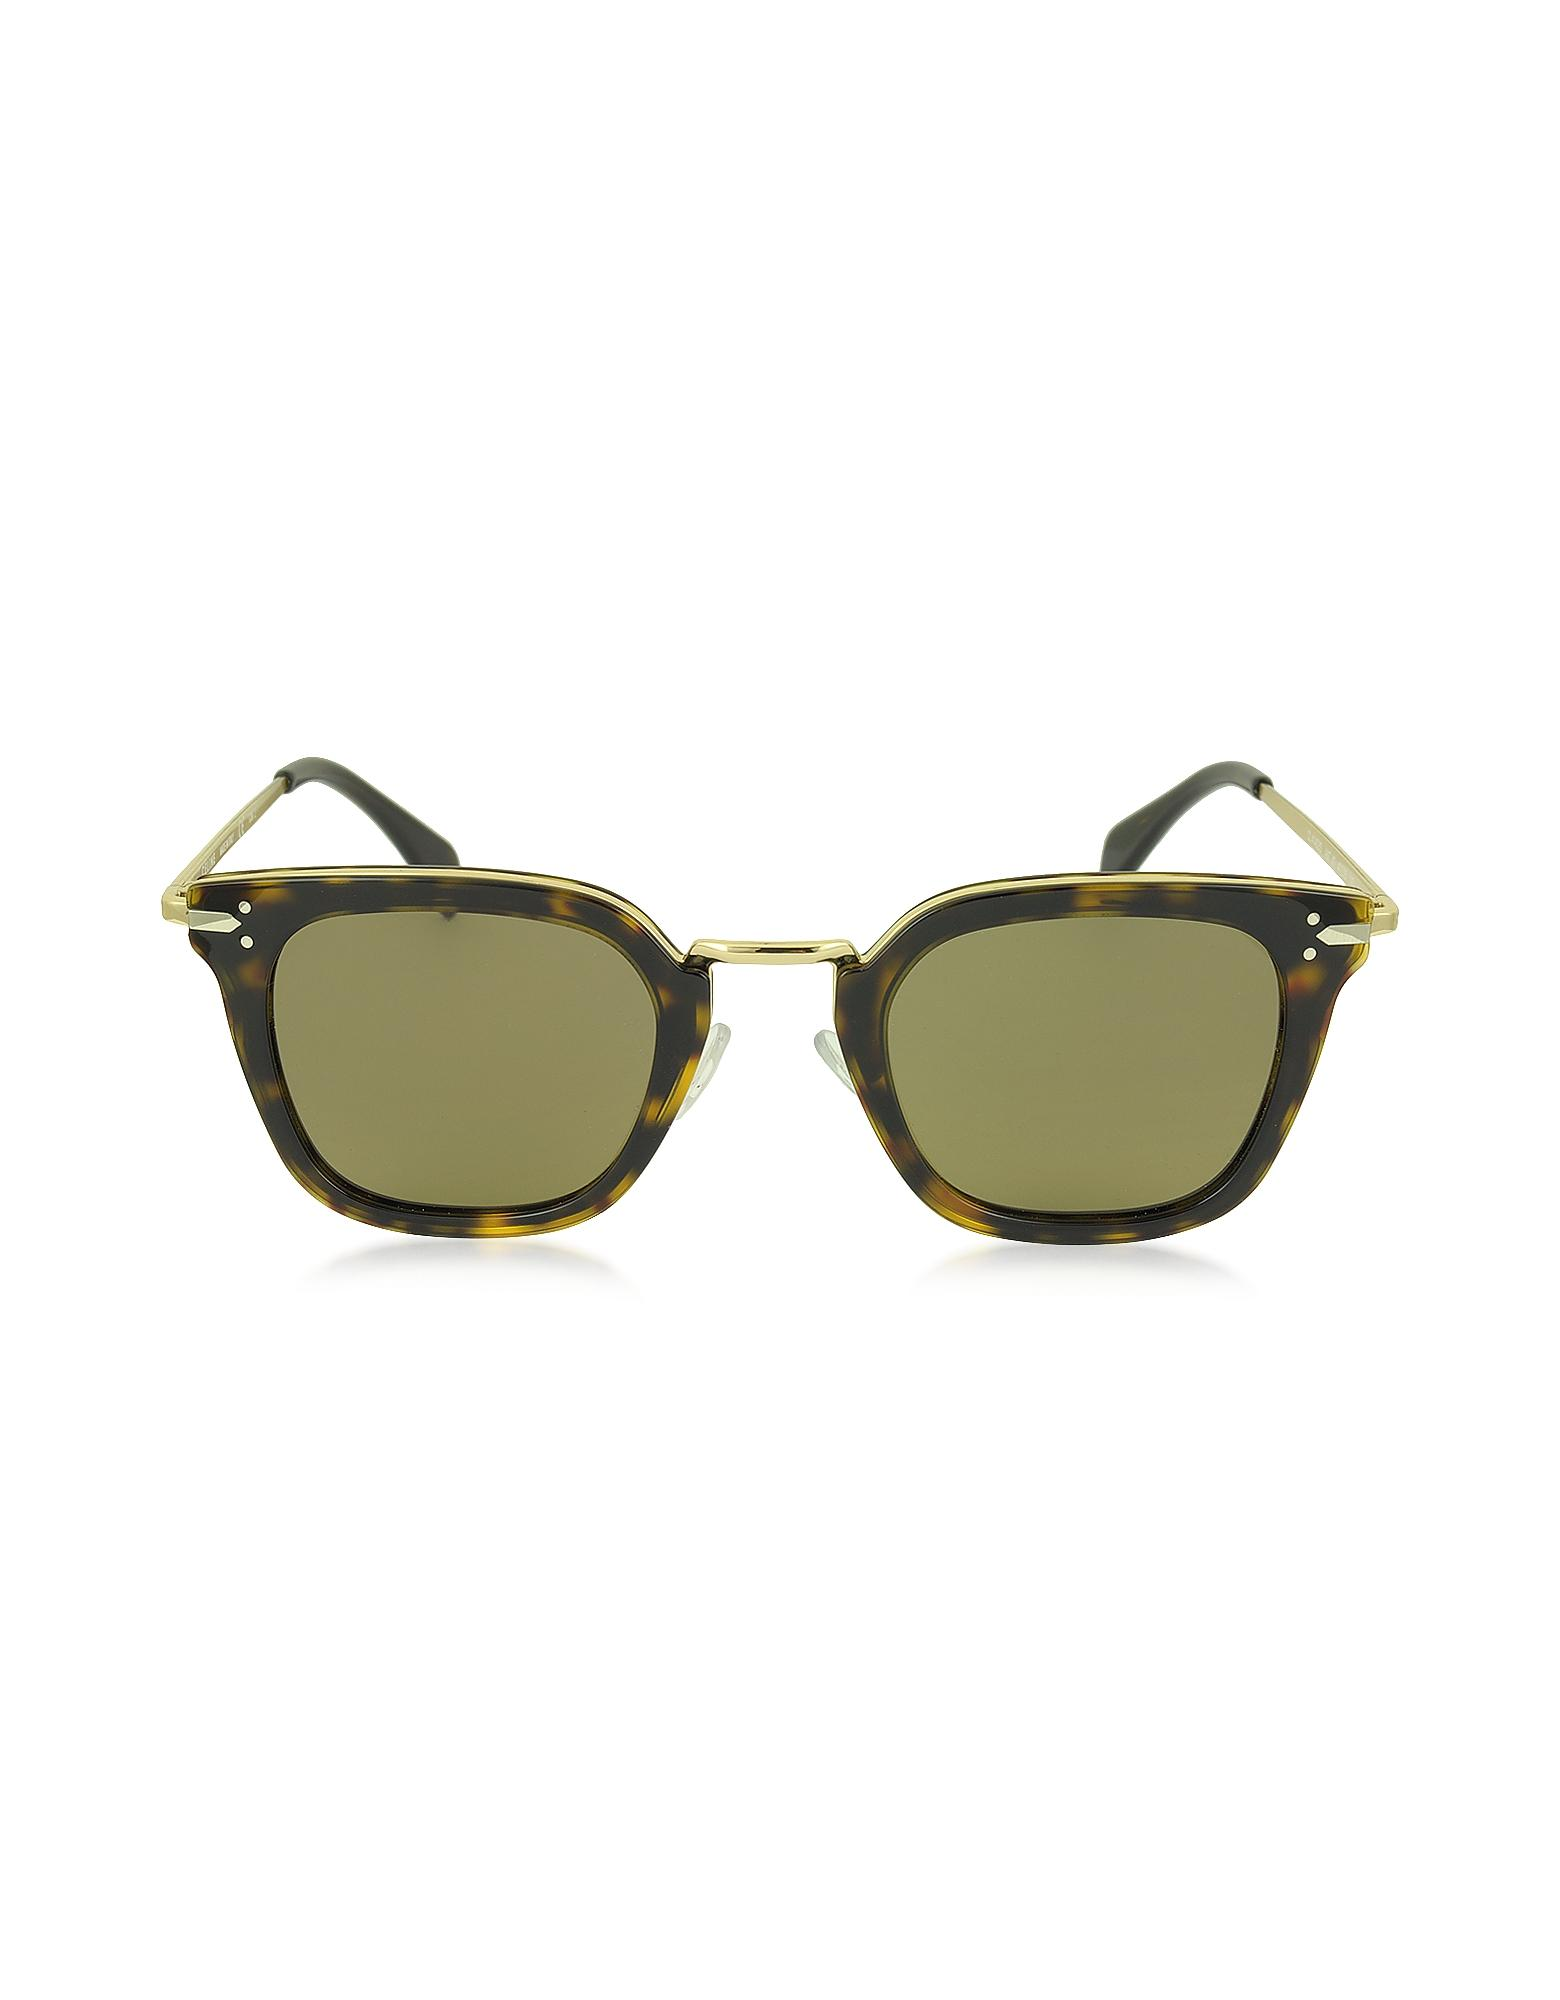 Celine Gold Frame Sunglasses : Celine Vic Cl 41402/s Acetate And Gold Metal Cat Eye Women ...